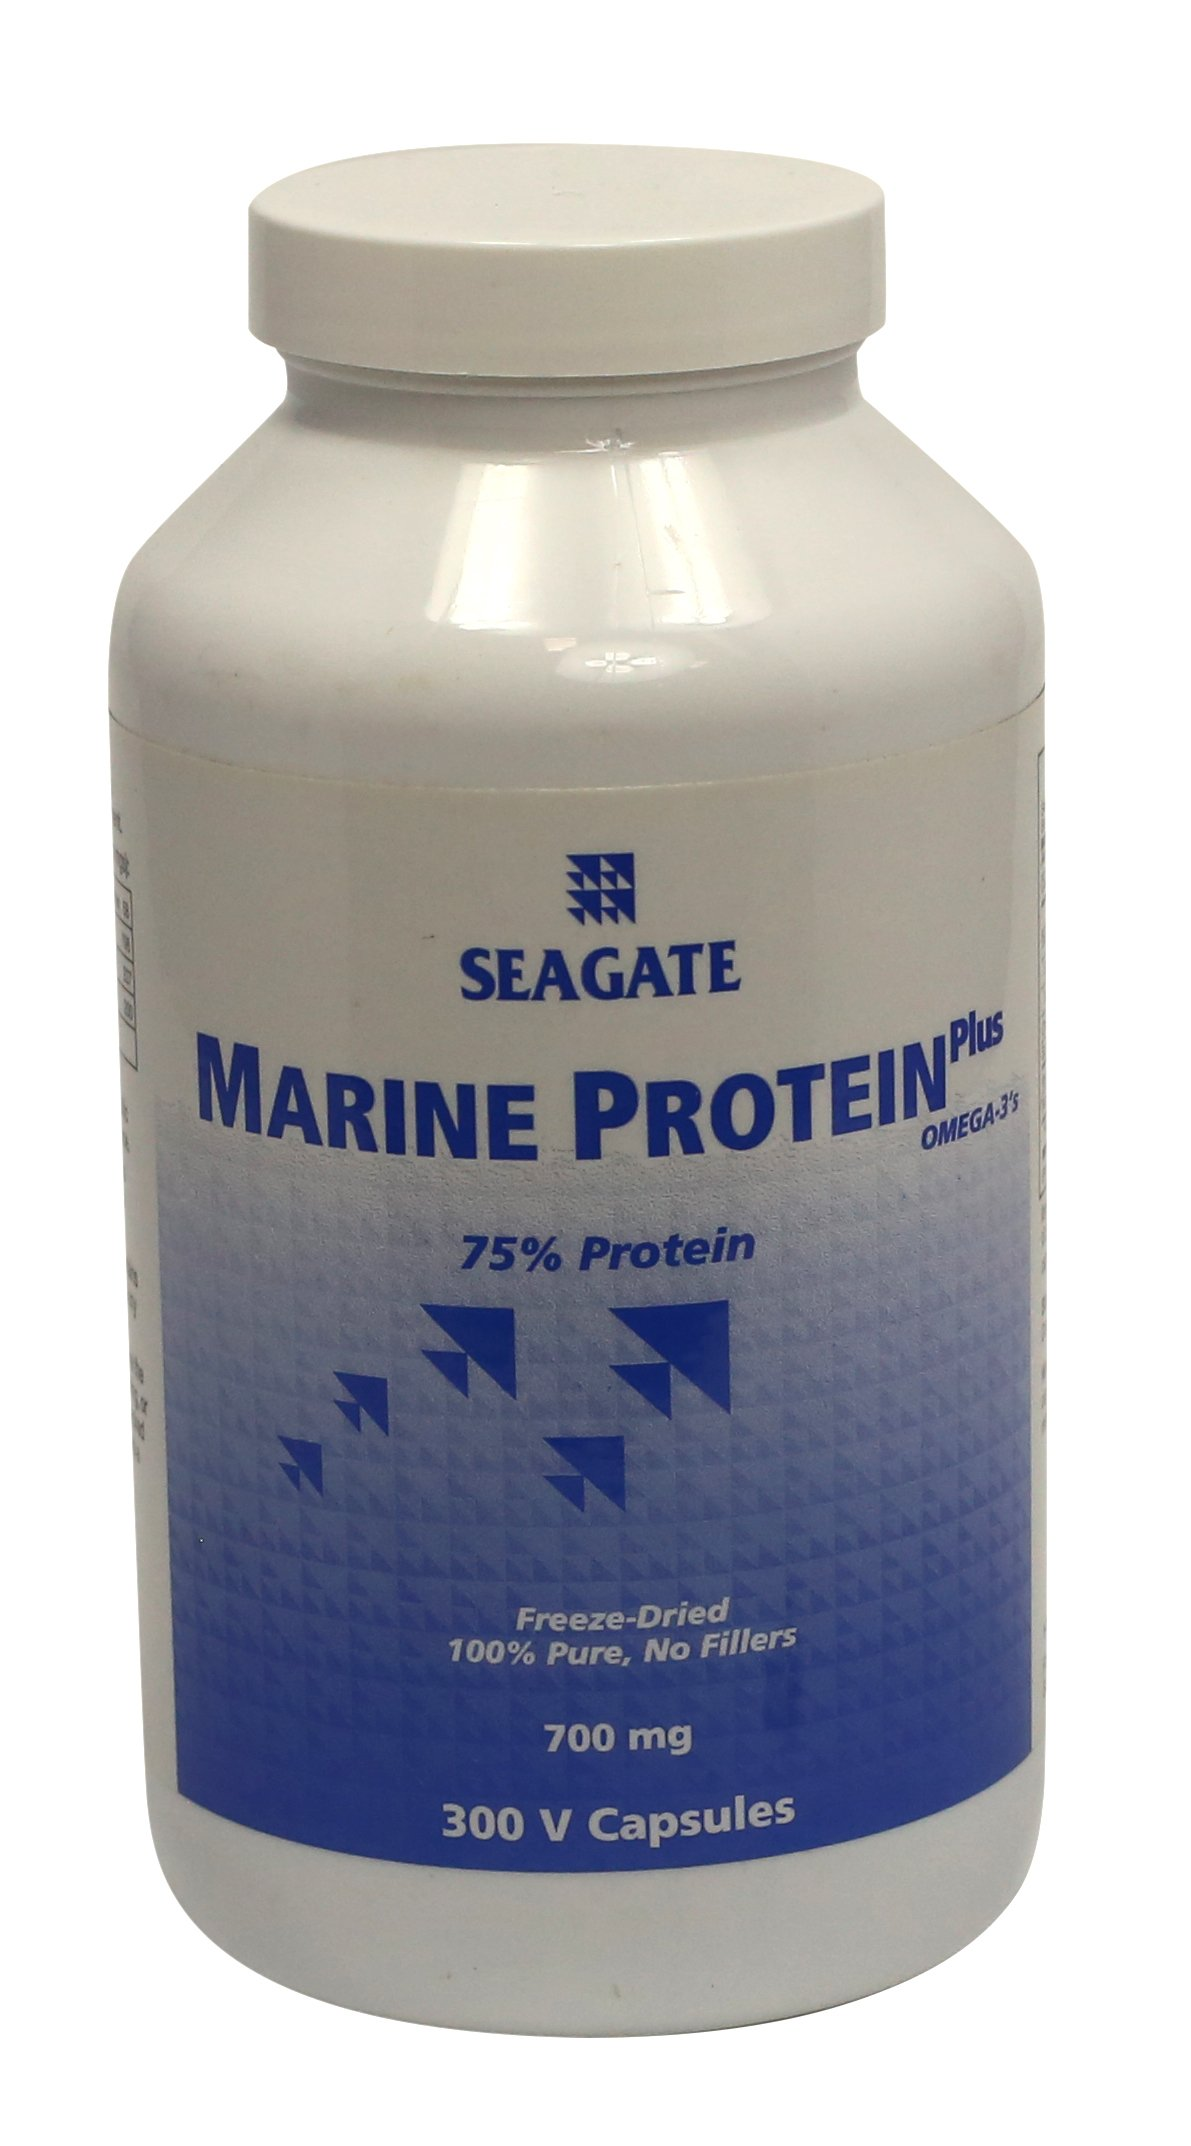 Seagate Products Marine Protein Plus Omega-3's 700 mg 300 Capsules